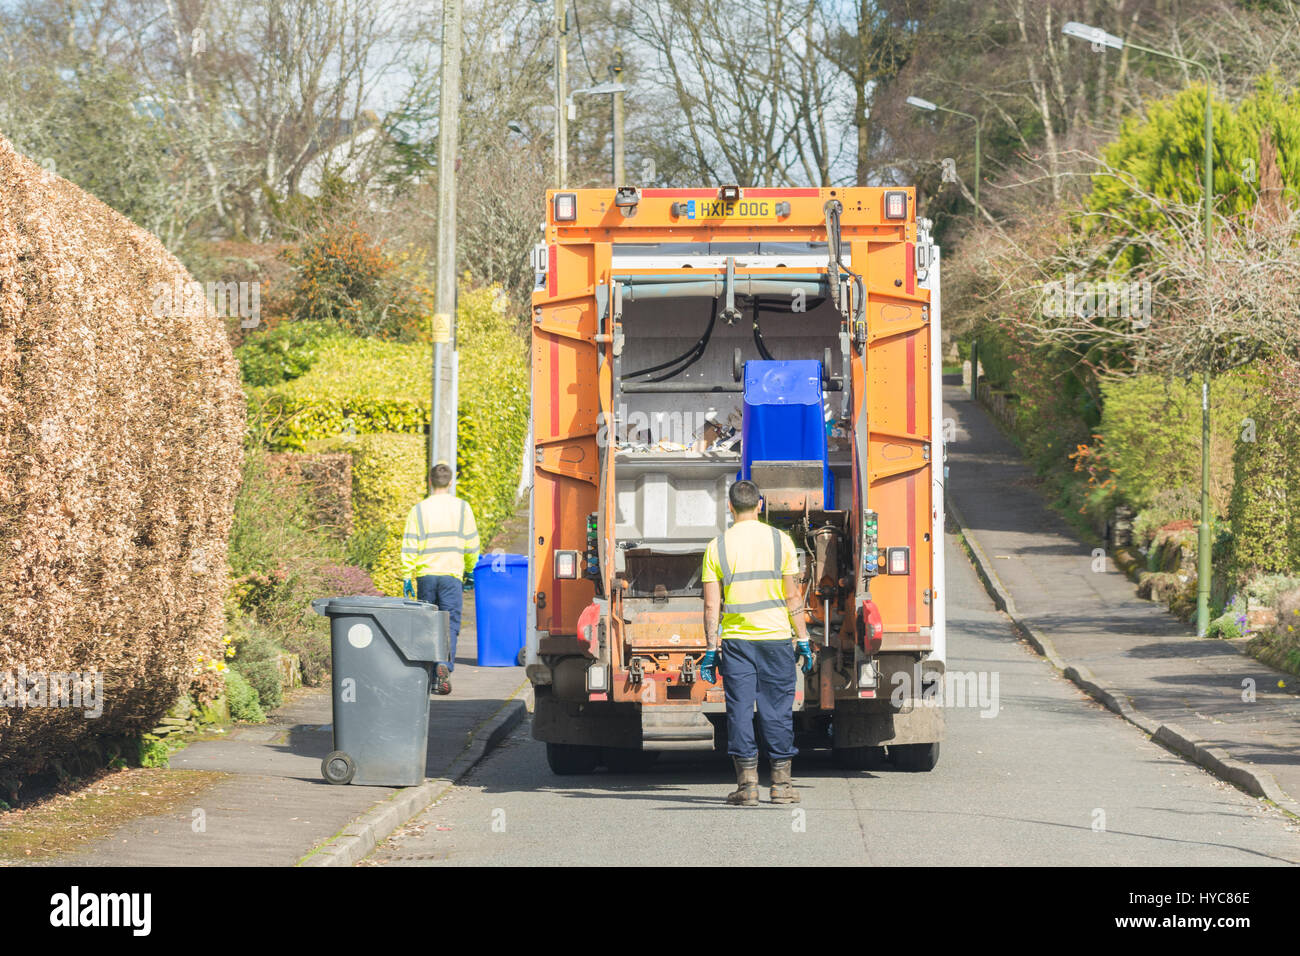 recycling lorry Stirlingshire, Scotland - Stock Image